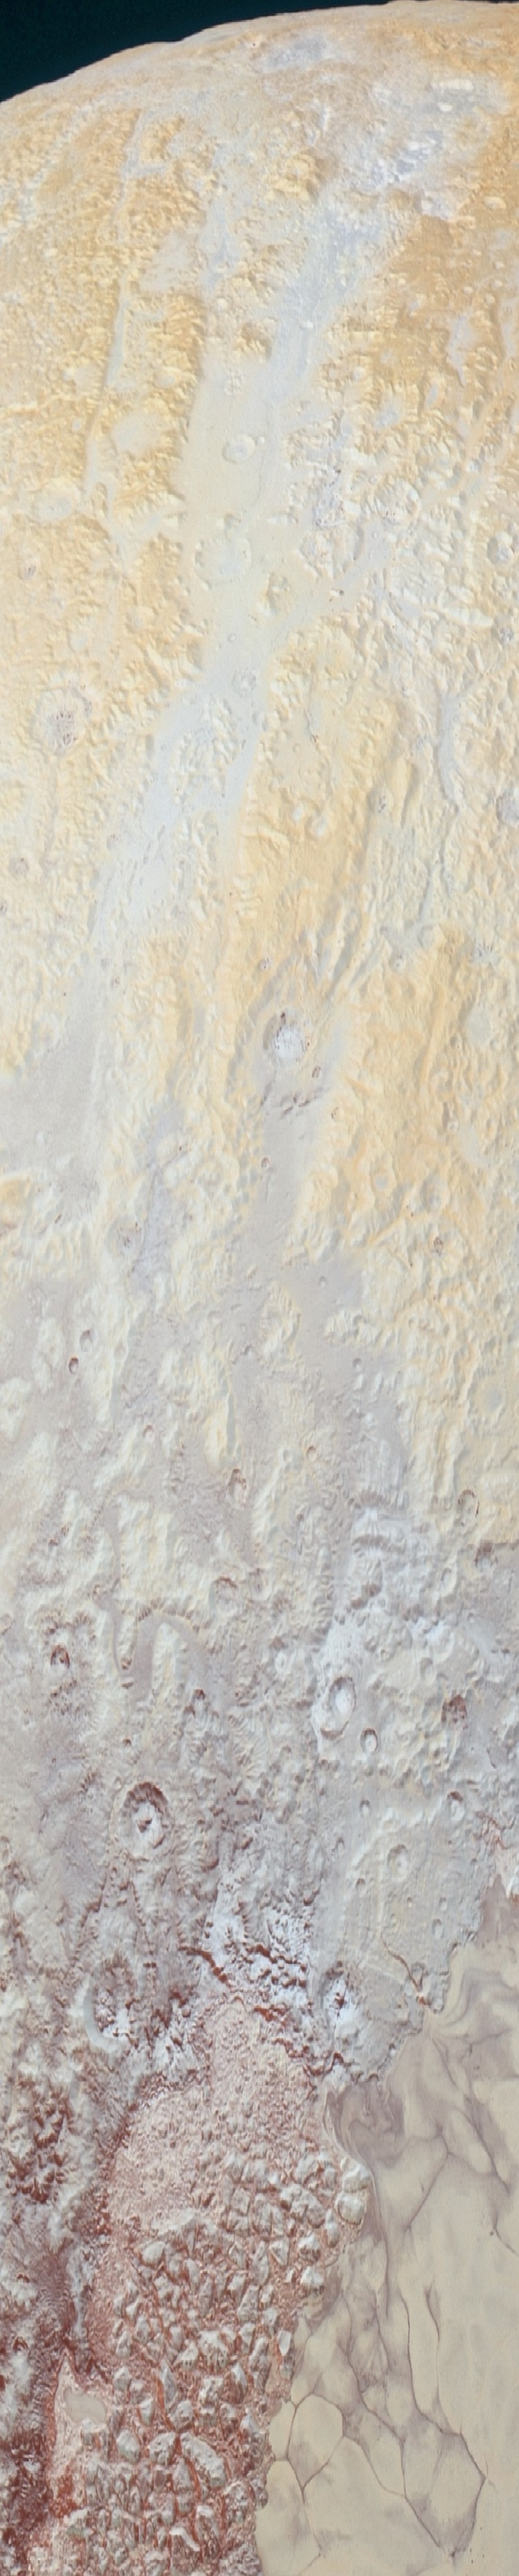 crop_p_color2_enhanced_release Nasa Pluto (2)